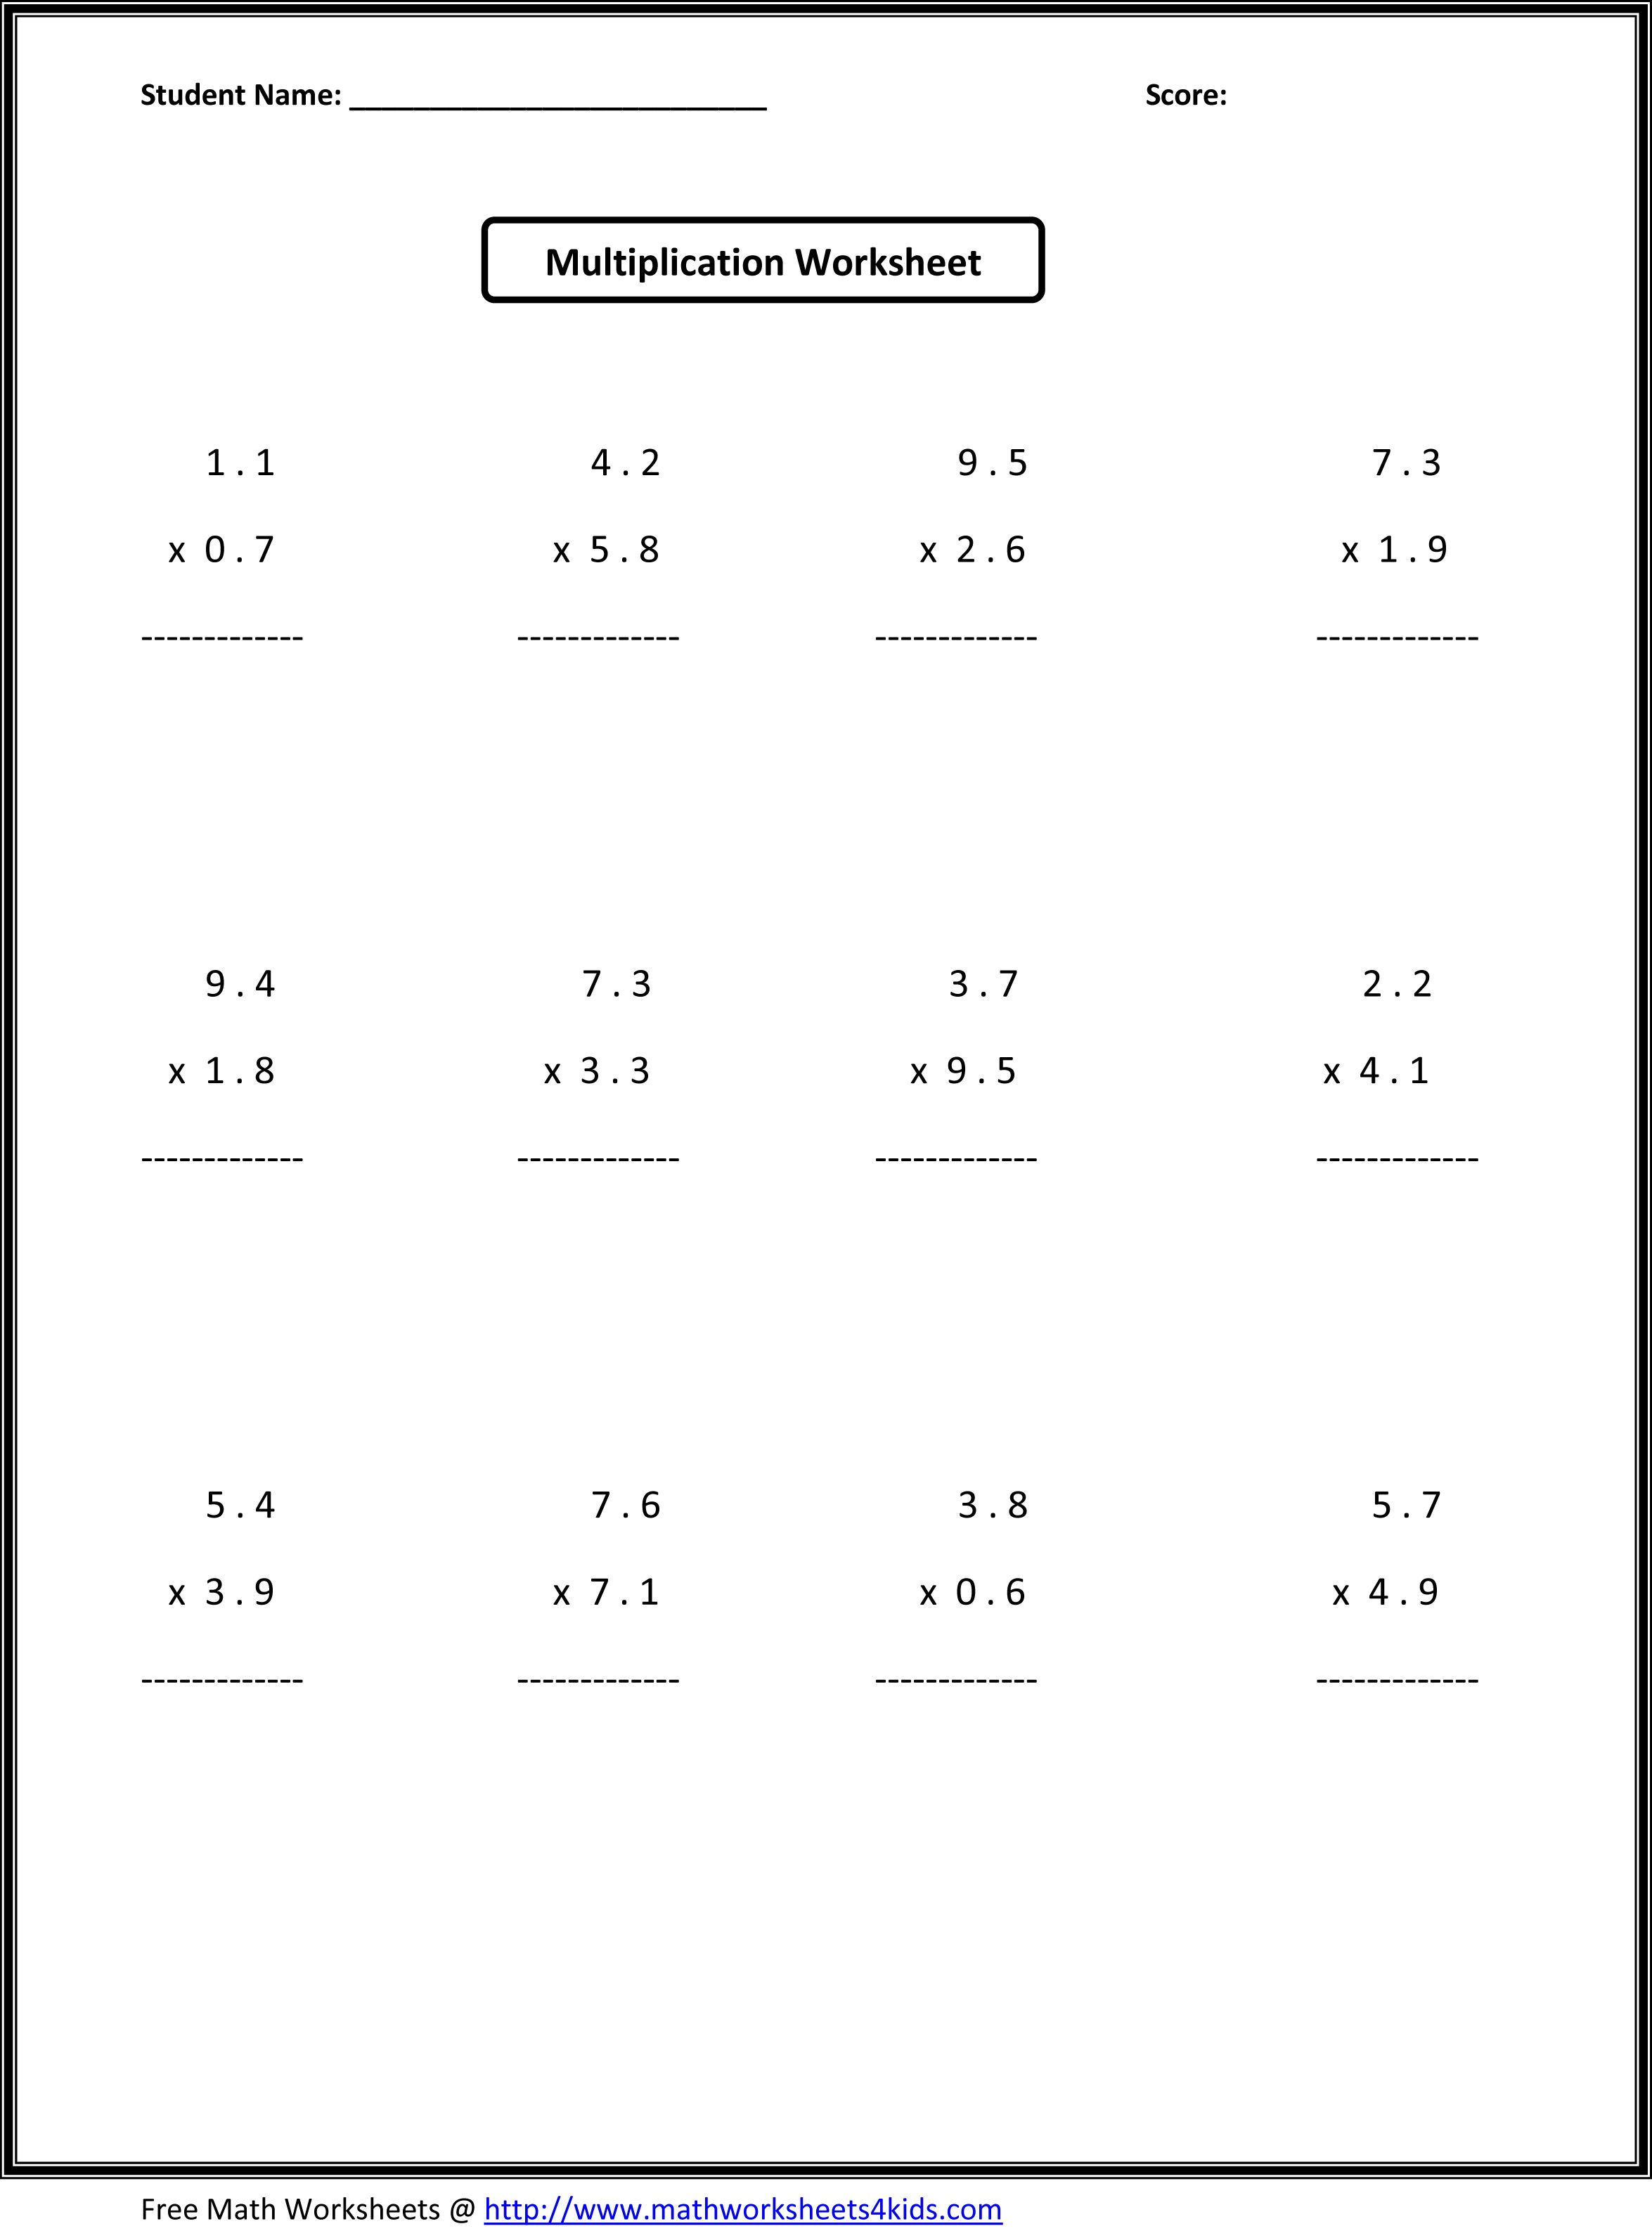 Printables Math Worksheets For 7th Graders 7th grade algebra worksheets math places value absolute based on basic math